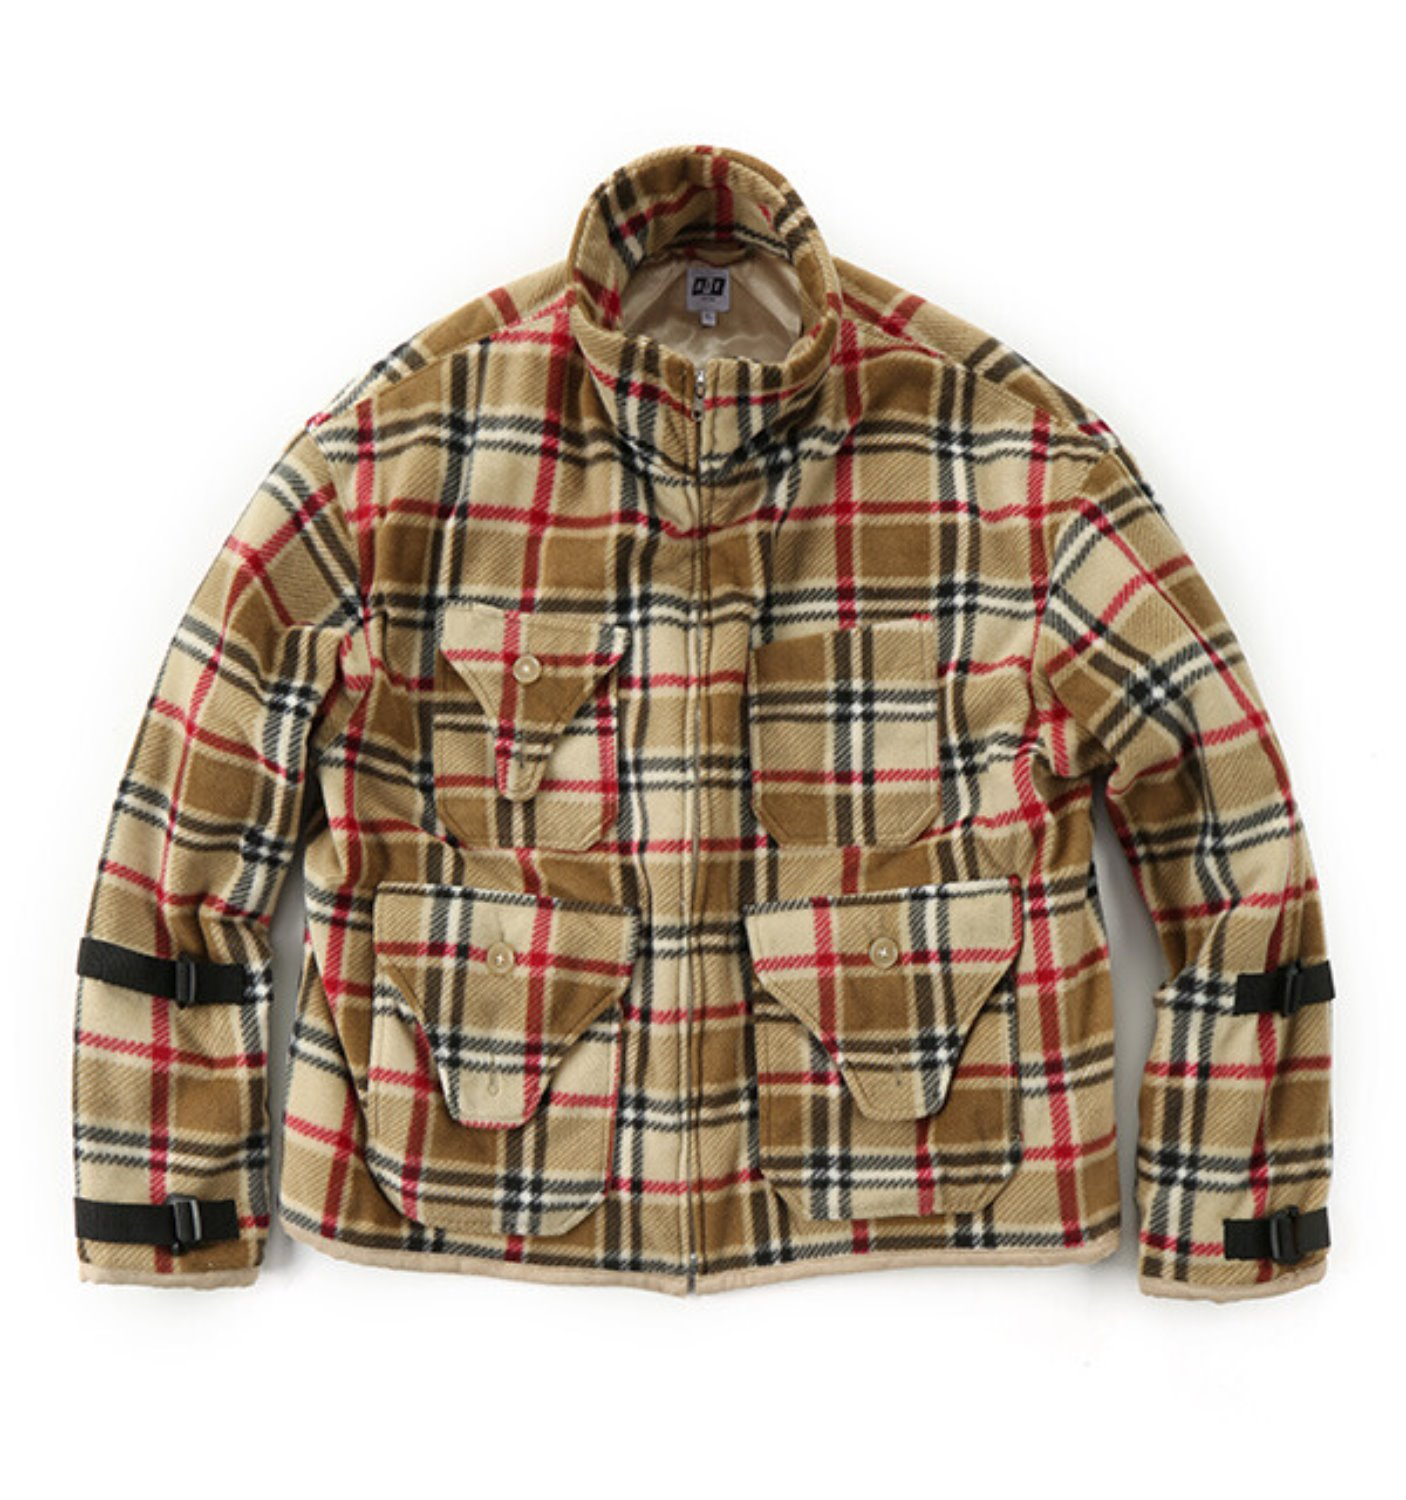 DOC JACKET CAMEL POLYESTER PLAID FLEECE